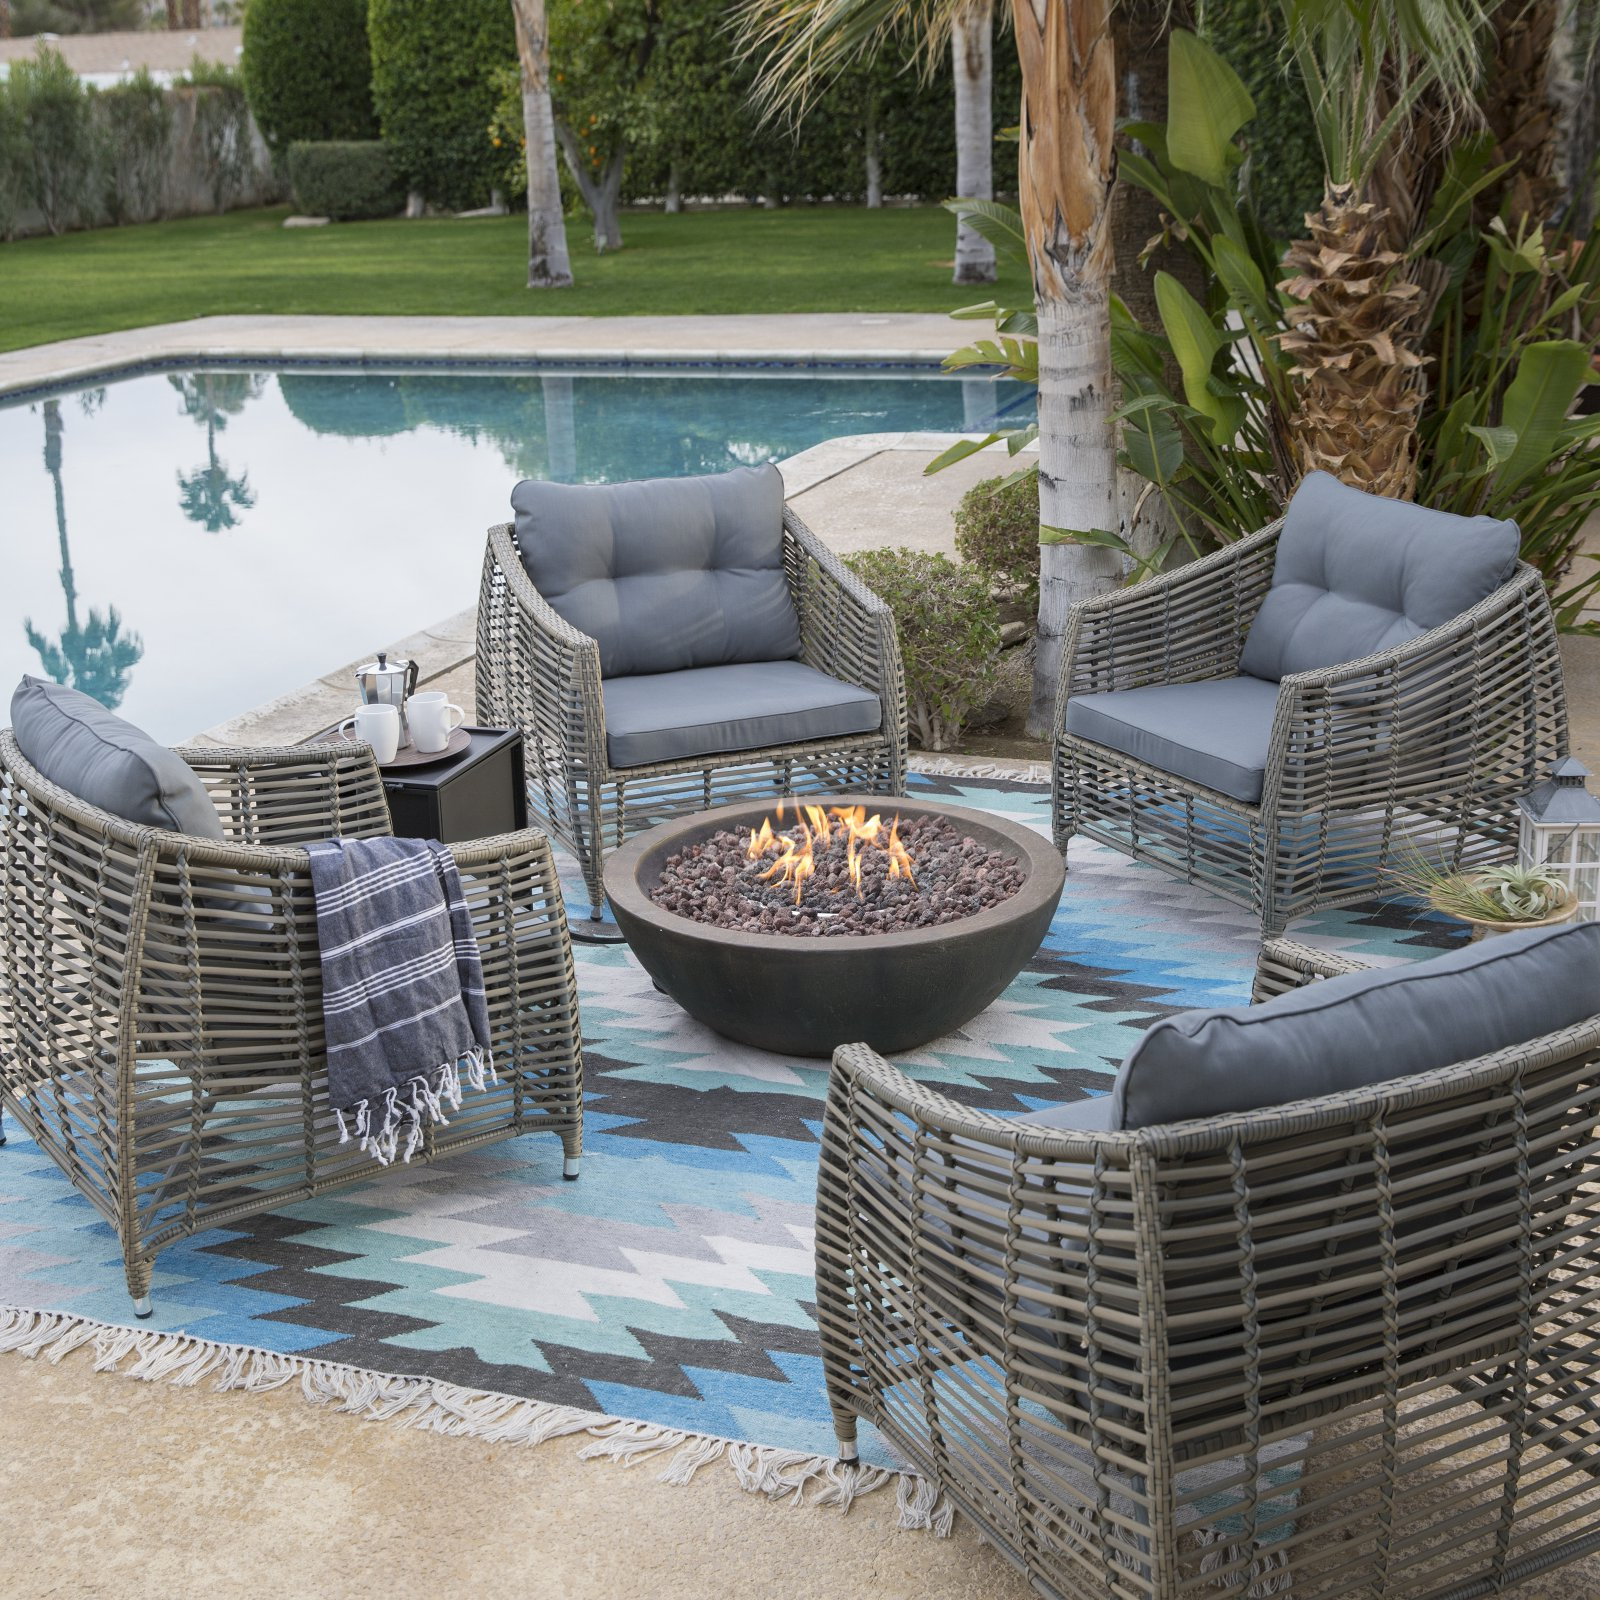 Belham Living Kambree Chat Set with Tucson Fire Pit